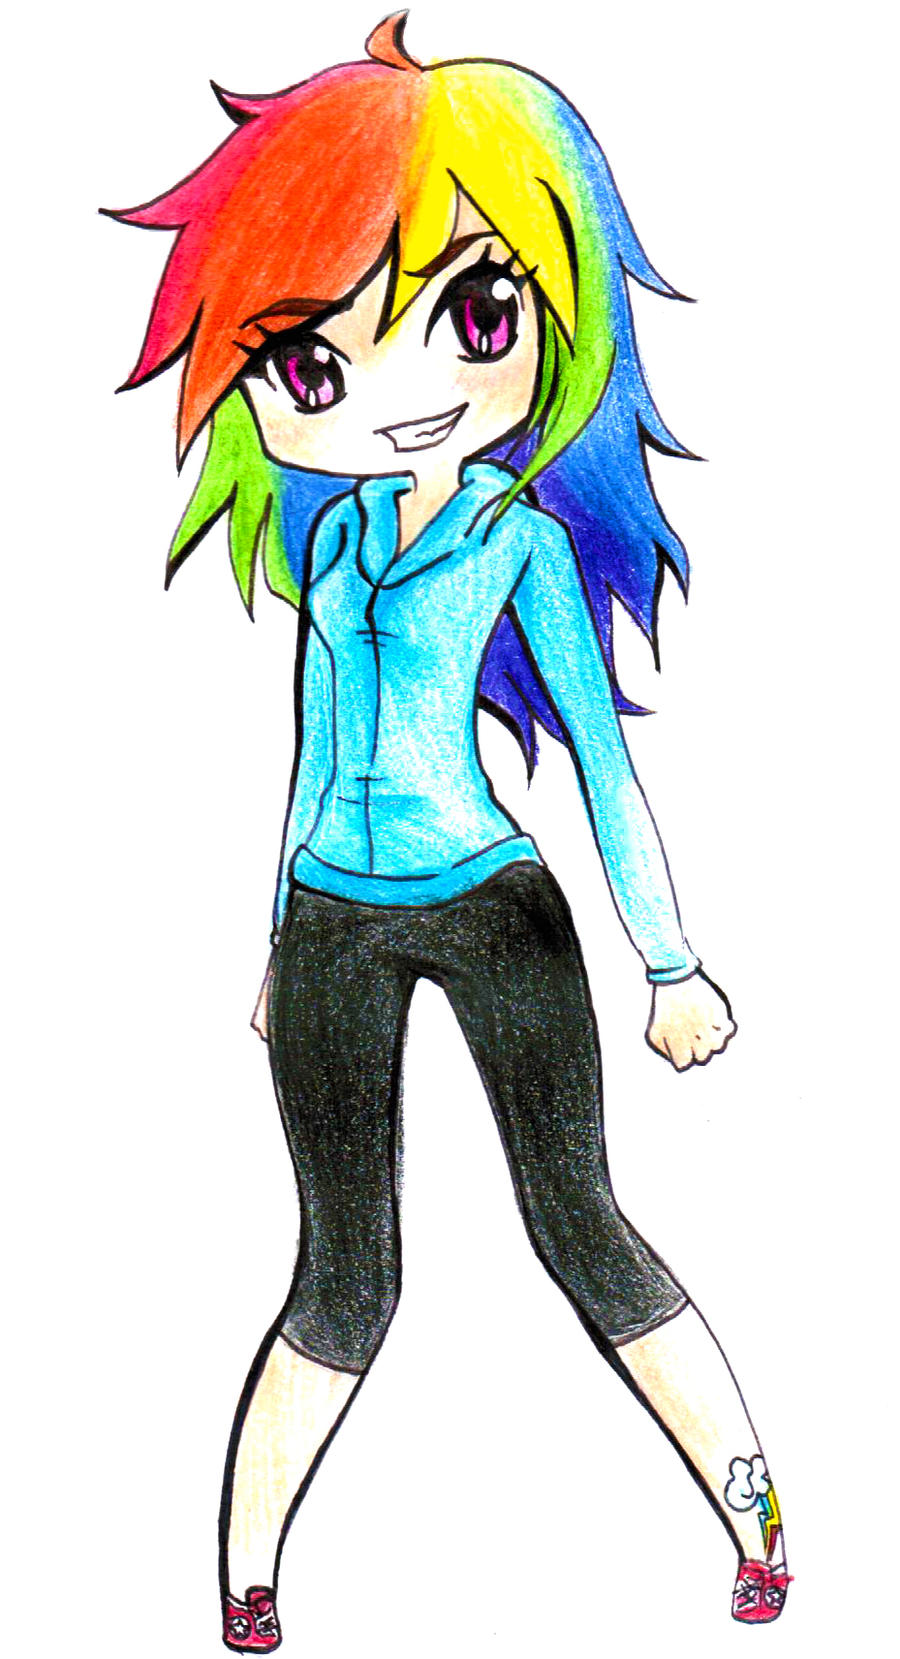 Rainbow Dash by Melody-in-the-Air on DeviantArt